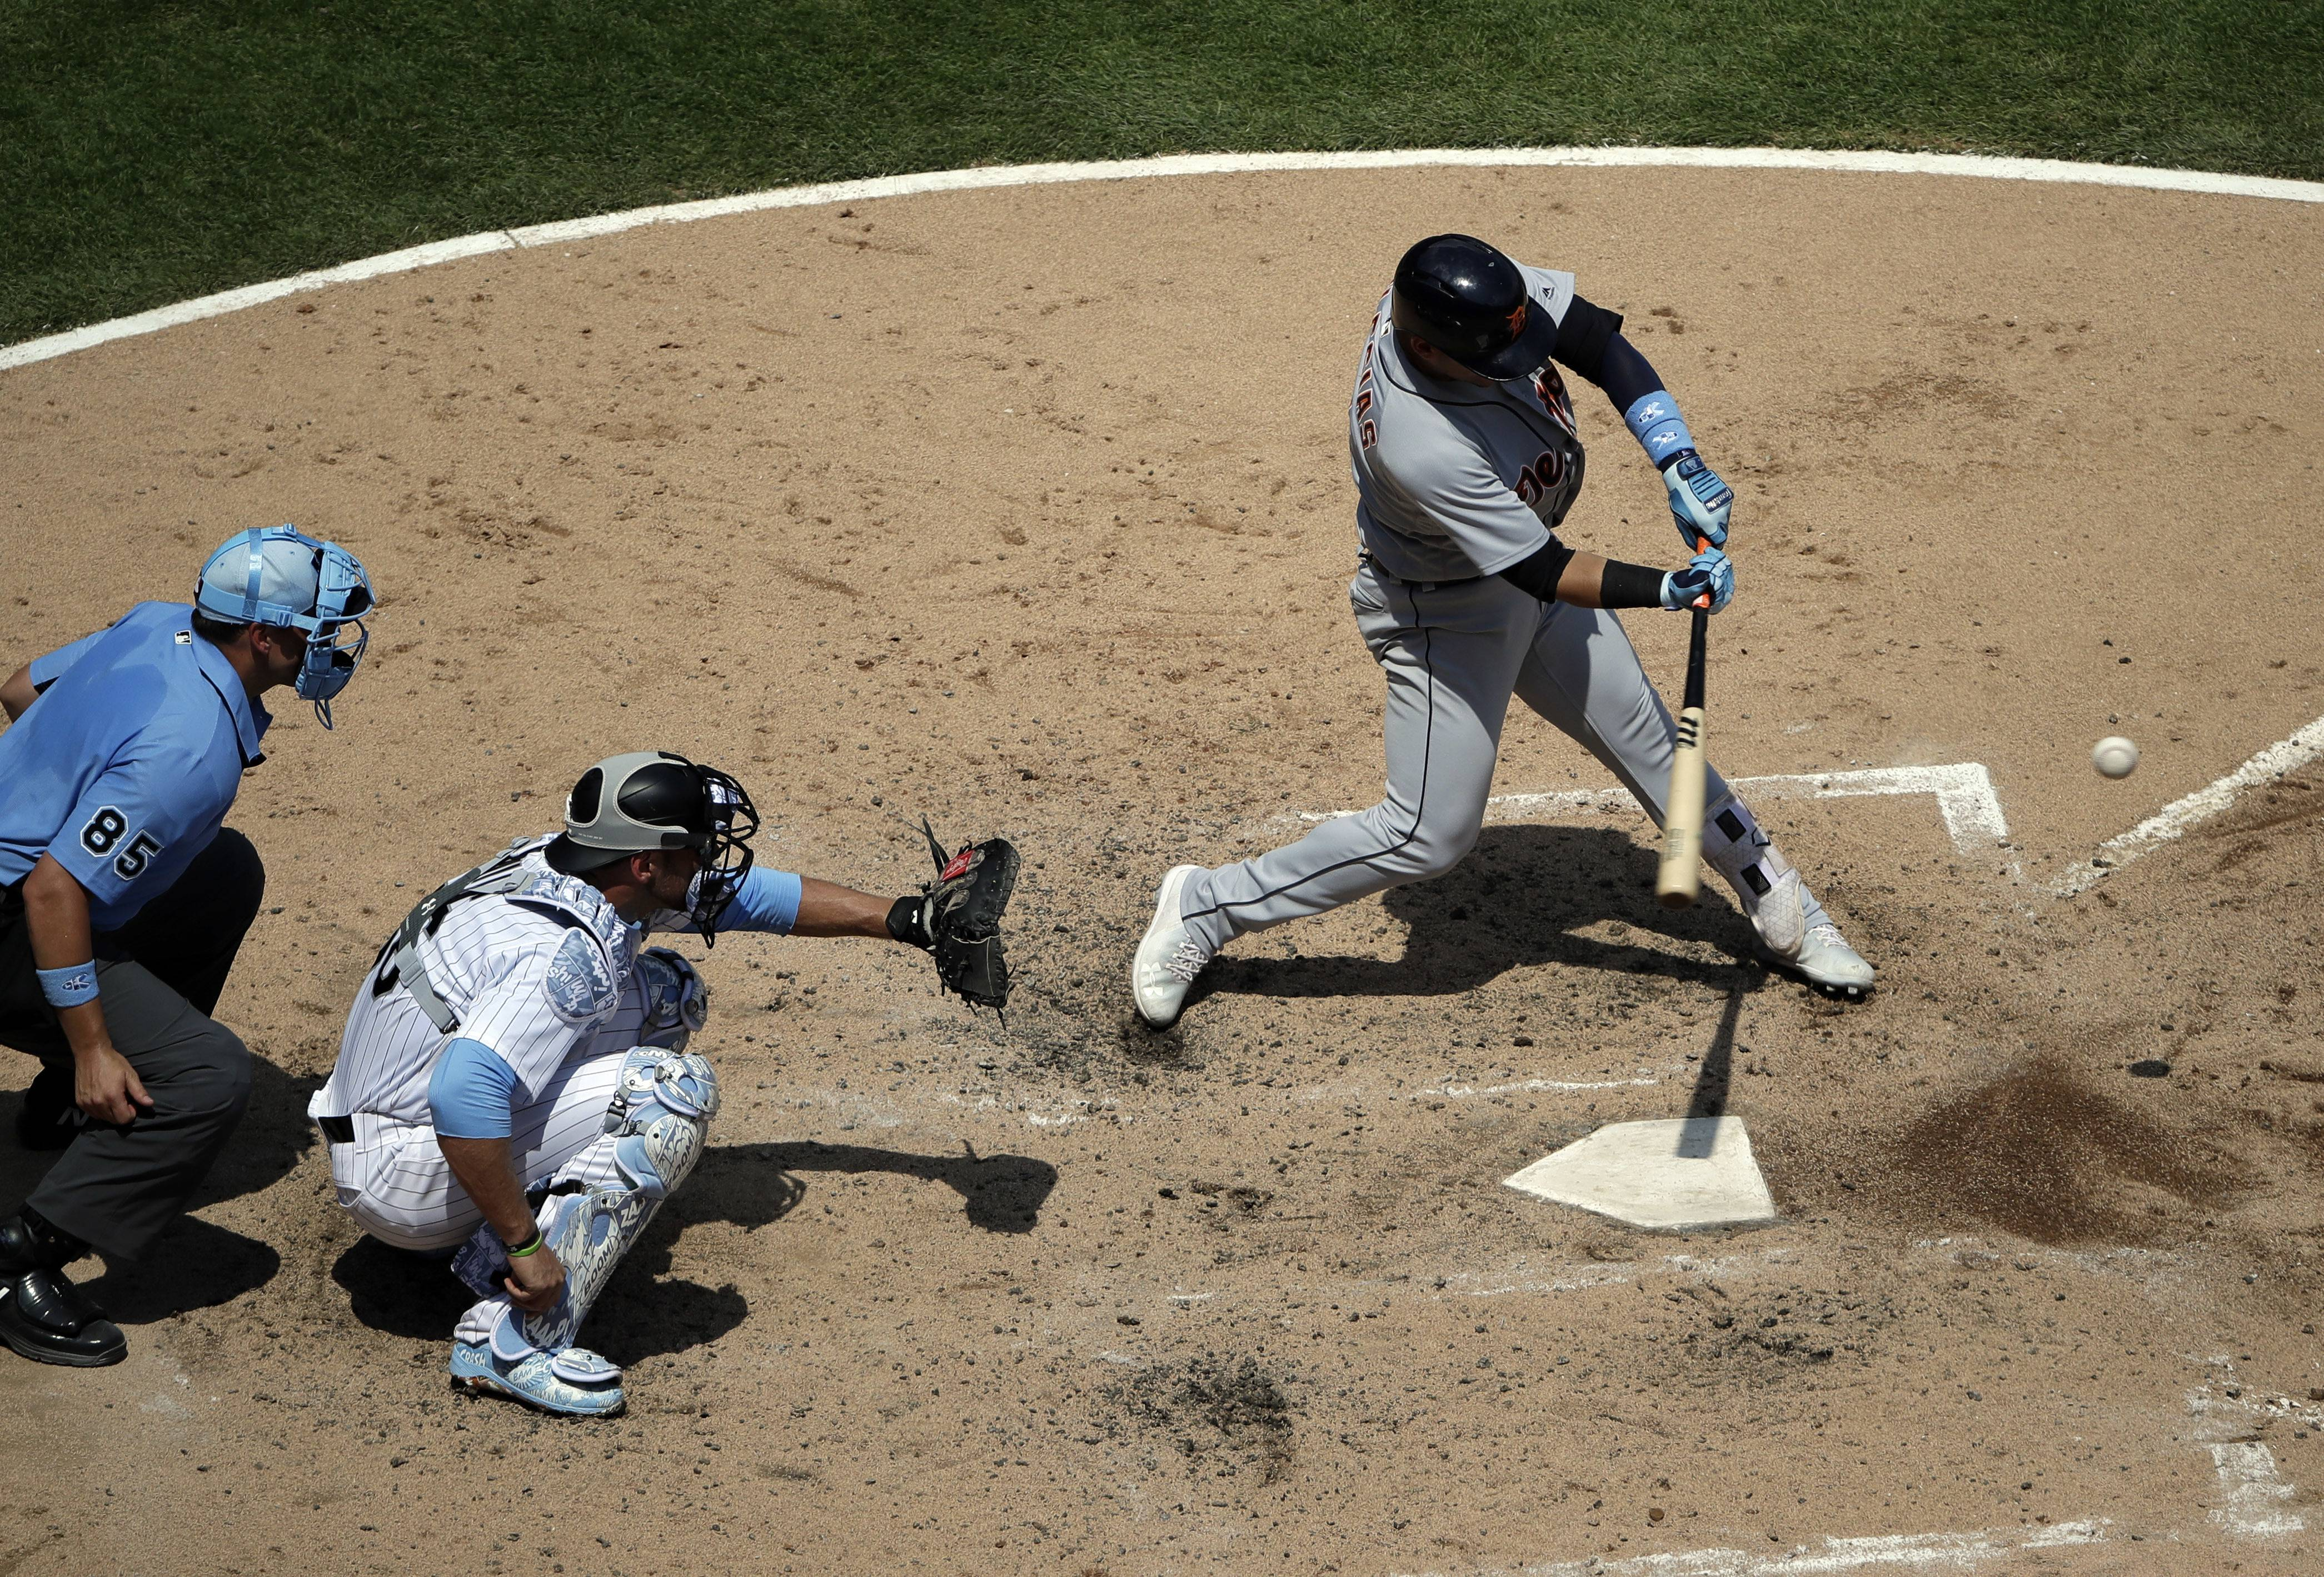 Detroit Tigers' Jose Iglesias, right, hits a one-run single against the Chicago White Sox during the fourth inning of a baseball game in Chicago, Sunday, June 17, 2018. (AP Photo/Nam Y. Huh)